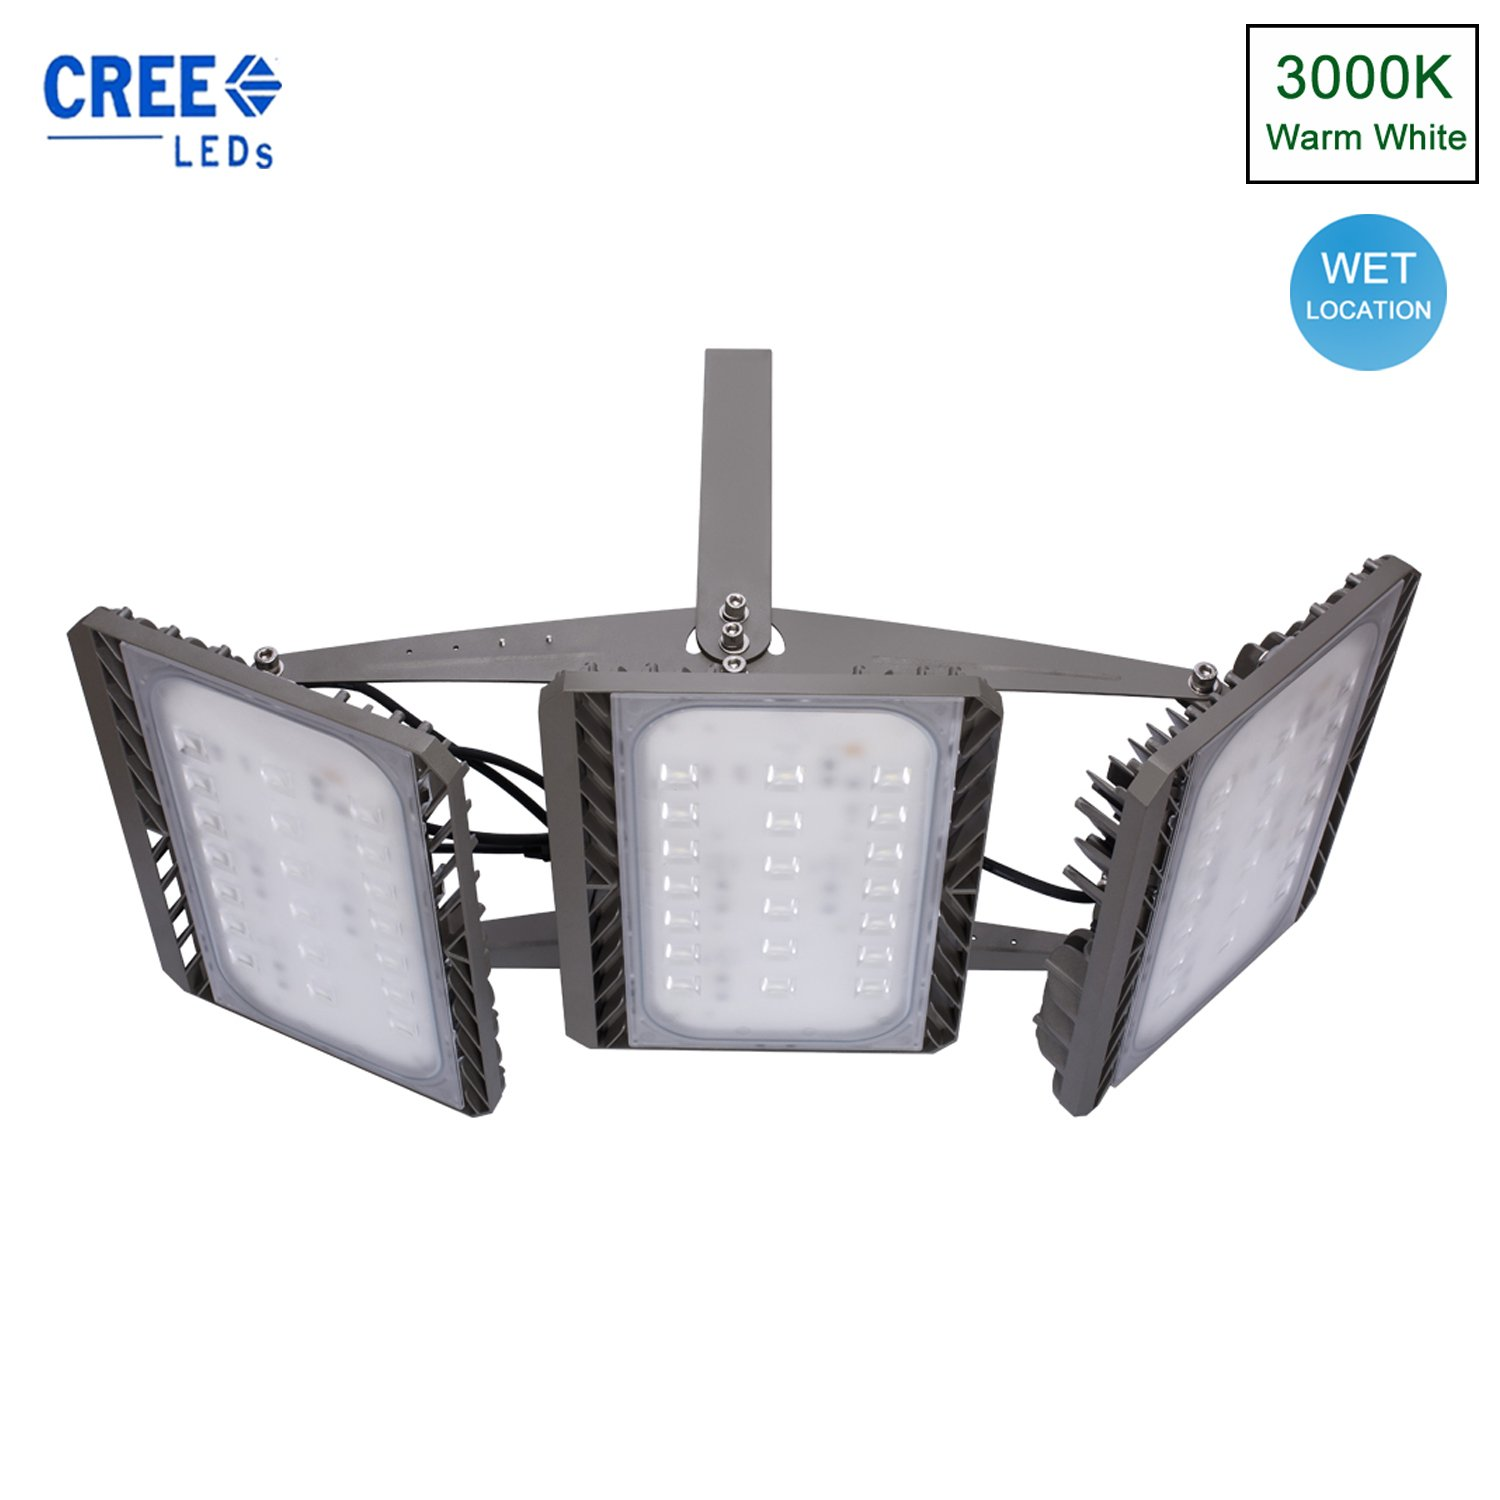 Stasun LED Flood Light, 300W Super Bright LED Security lights Outdoor, Cree LED Source, 27000lm, 900W Equivalent, 3000K Warm White, Adjustable Heads, Wide Angle Waterproof Large Area Wall Lights